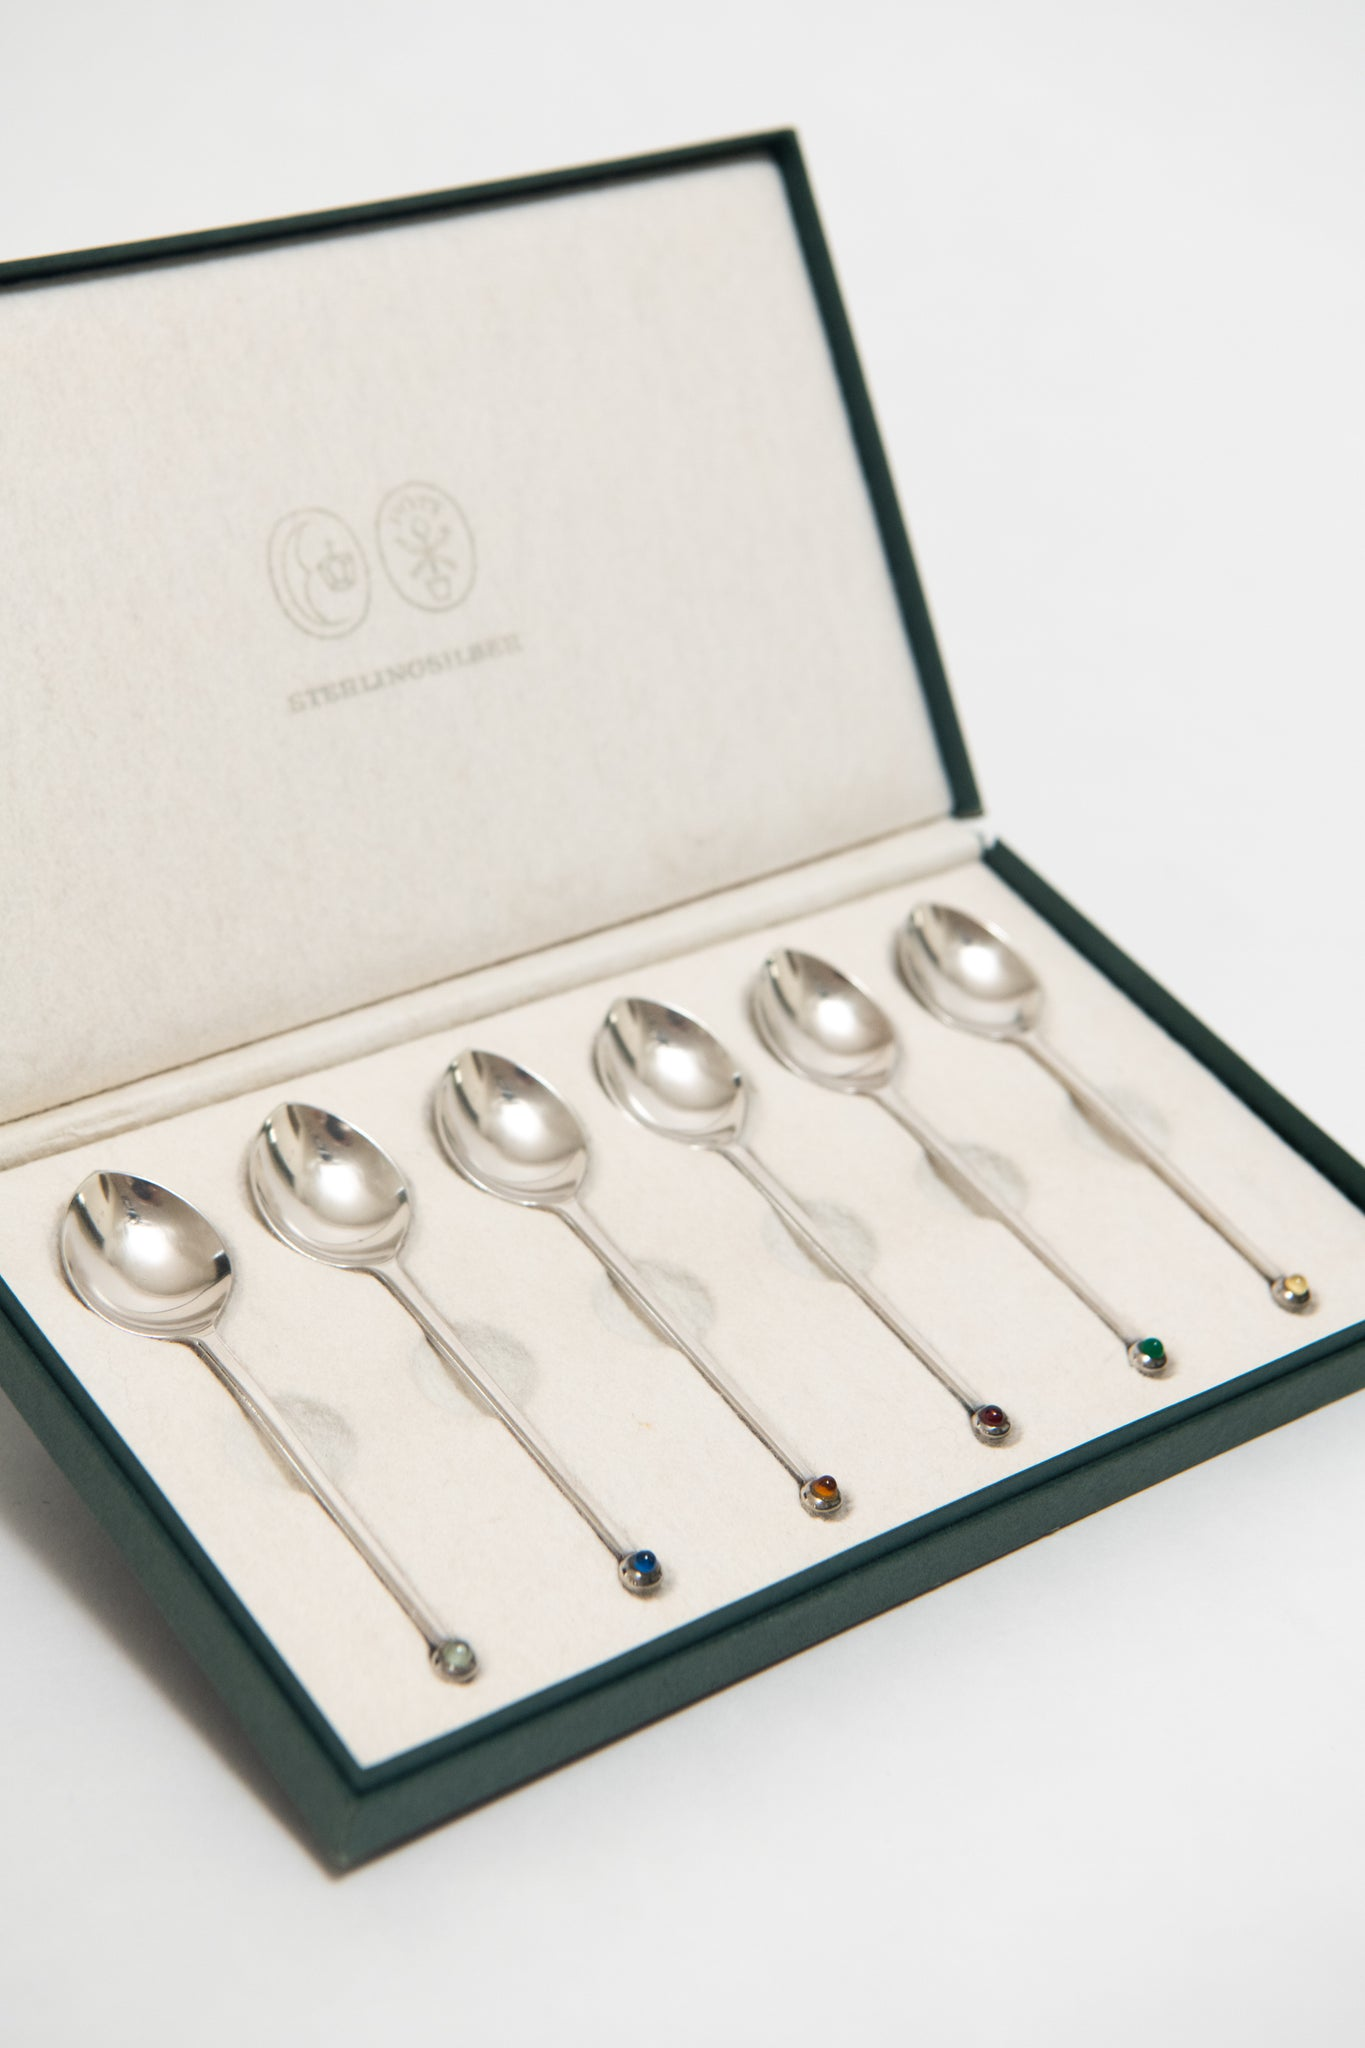 JOSEF HOFFMANN, SILVER TEASPOON SET, C. 1955